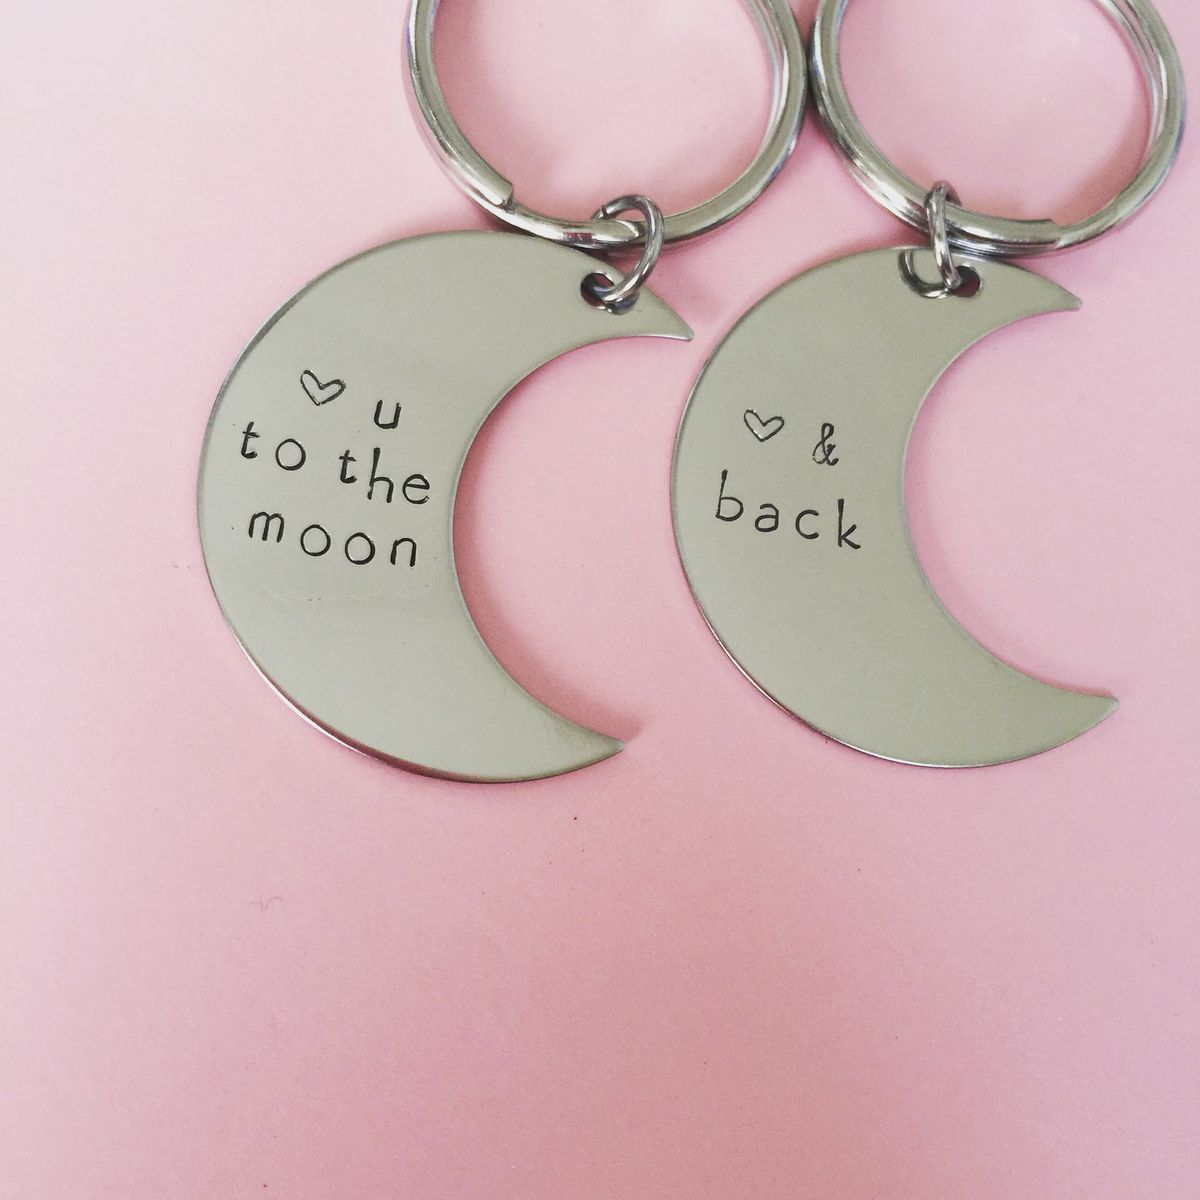 Moon Keychains, Heart you to the moon and back, couples keychains - product images  of